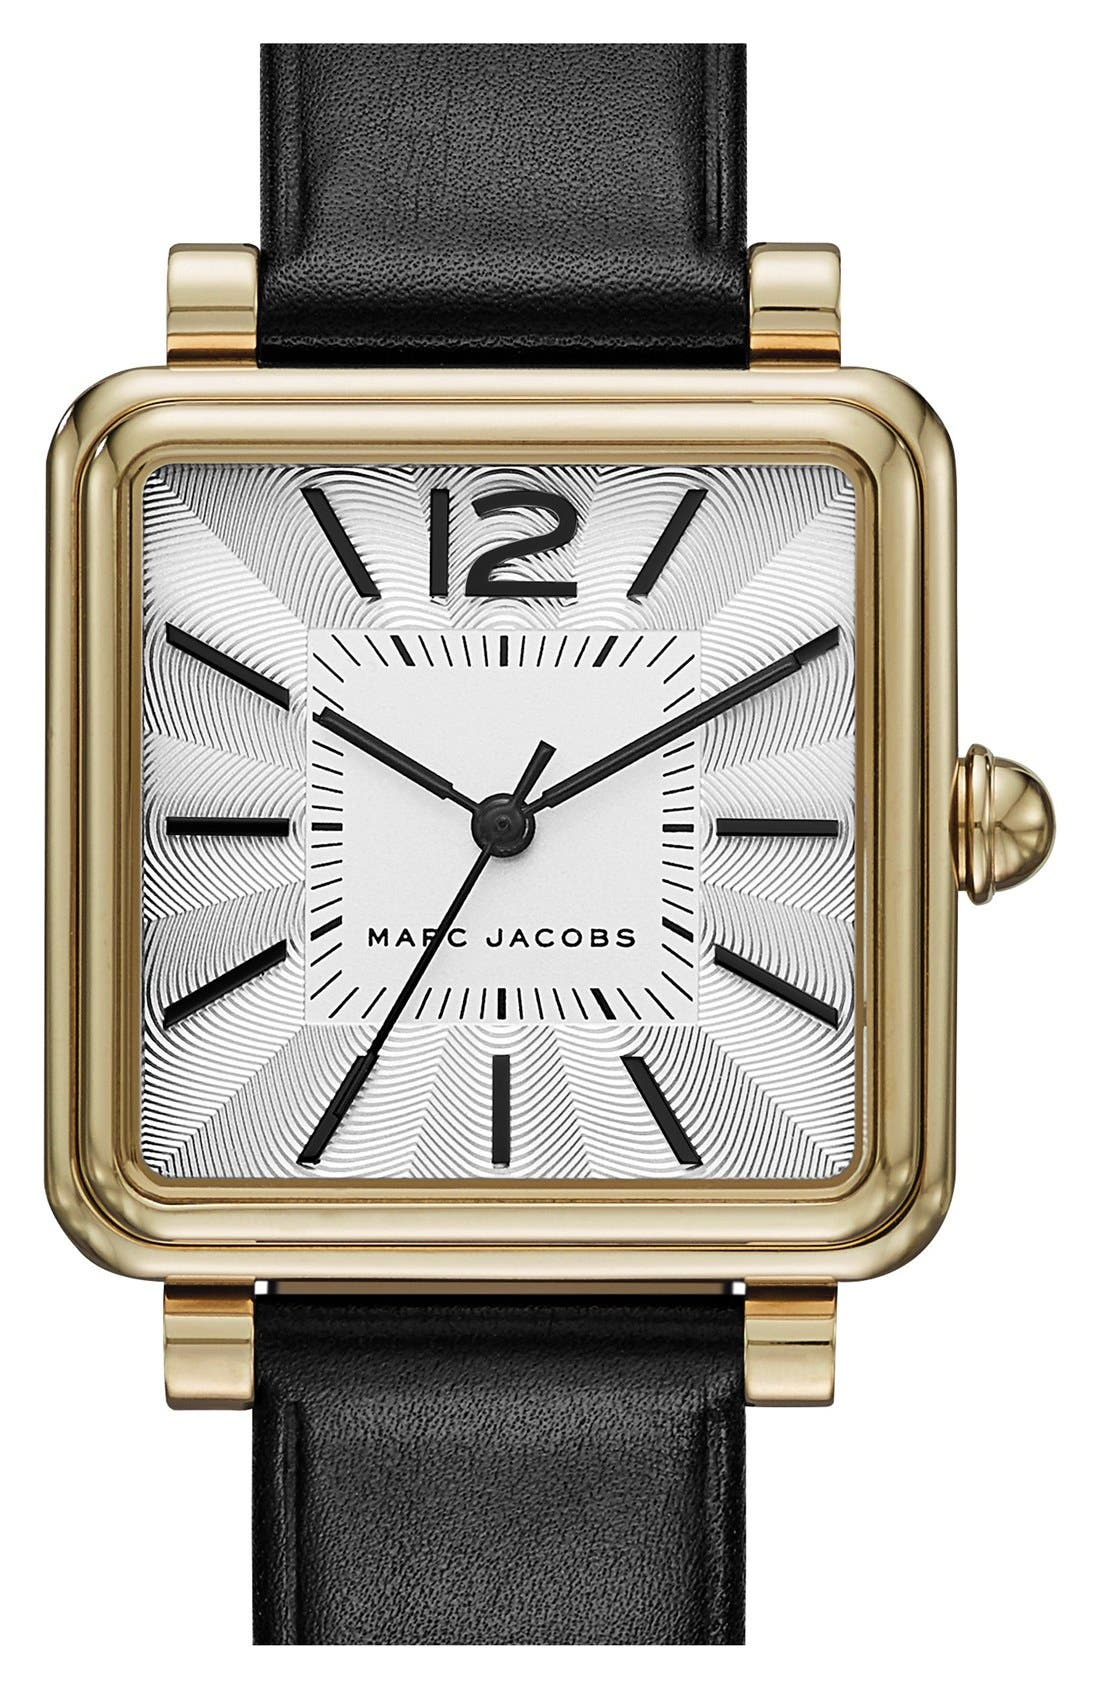 MARC JACOBS 'Vic' Leather Strap Watch, 30mm